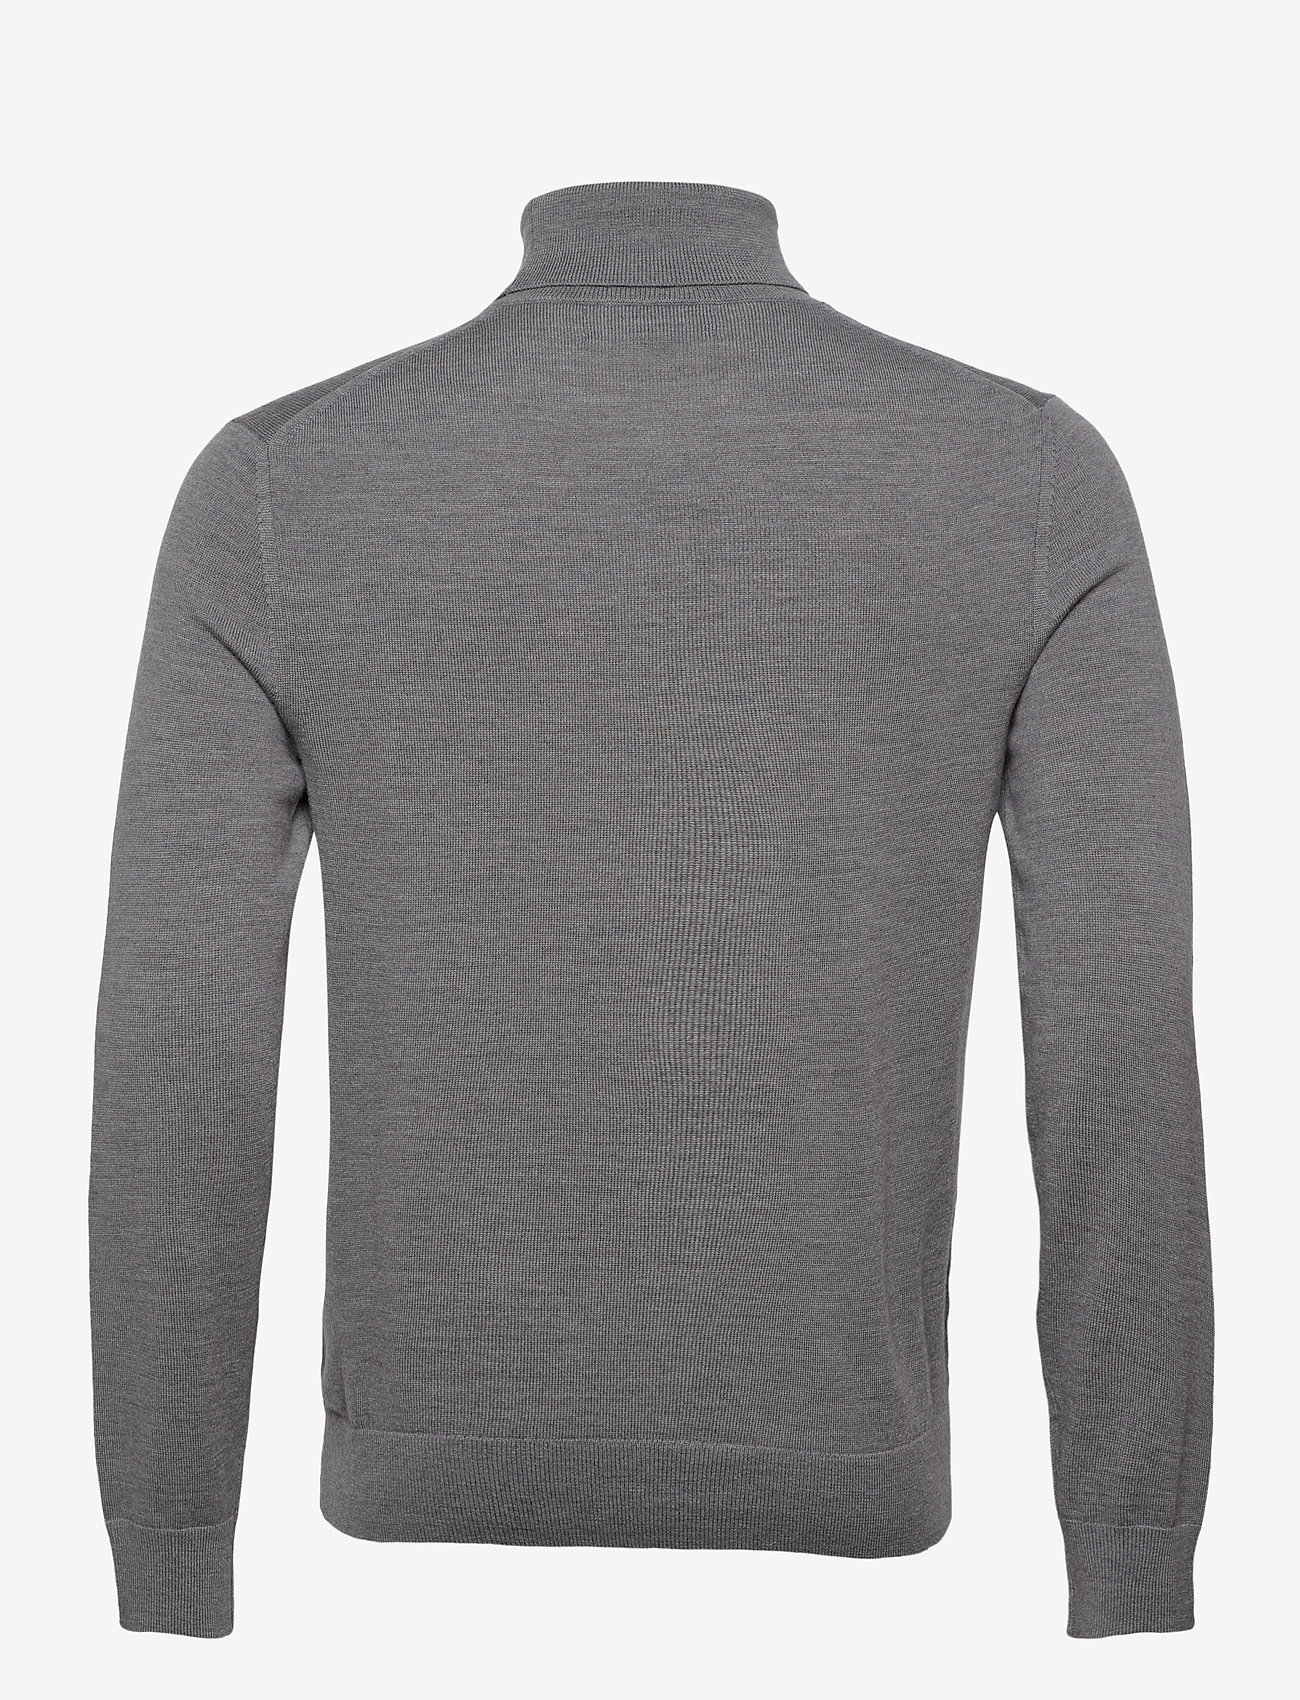 Banana Republic - Italian Merino Turtleneck Sweater - basic knitwear - harbor grey - 1